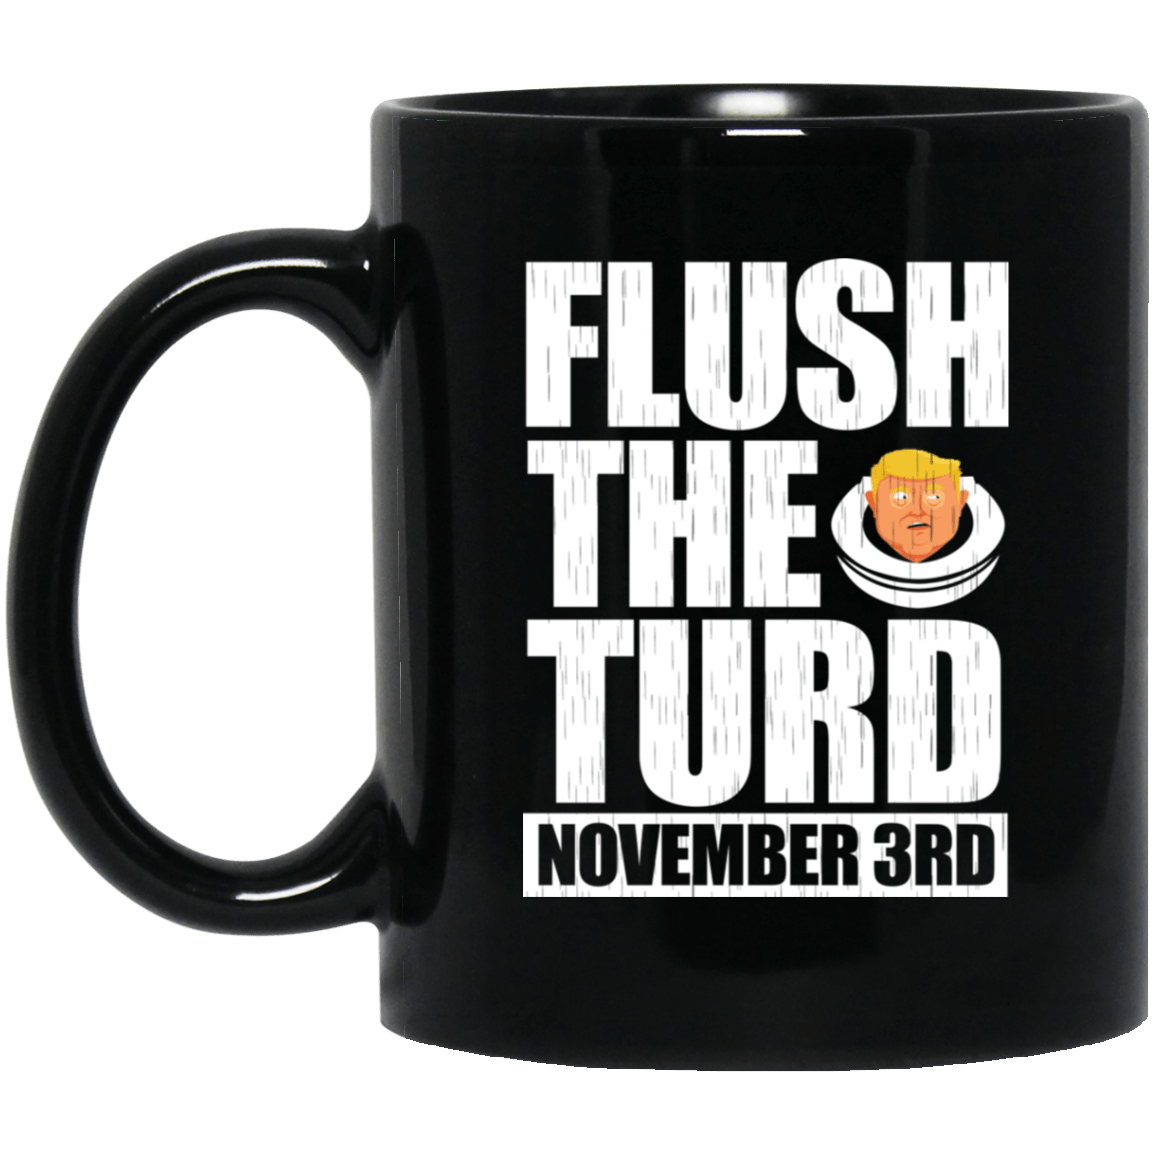 Anti Trump Flush The Turd November 3rd Mug 1065-10181-88282974-49307 - Tee Ript